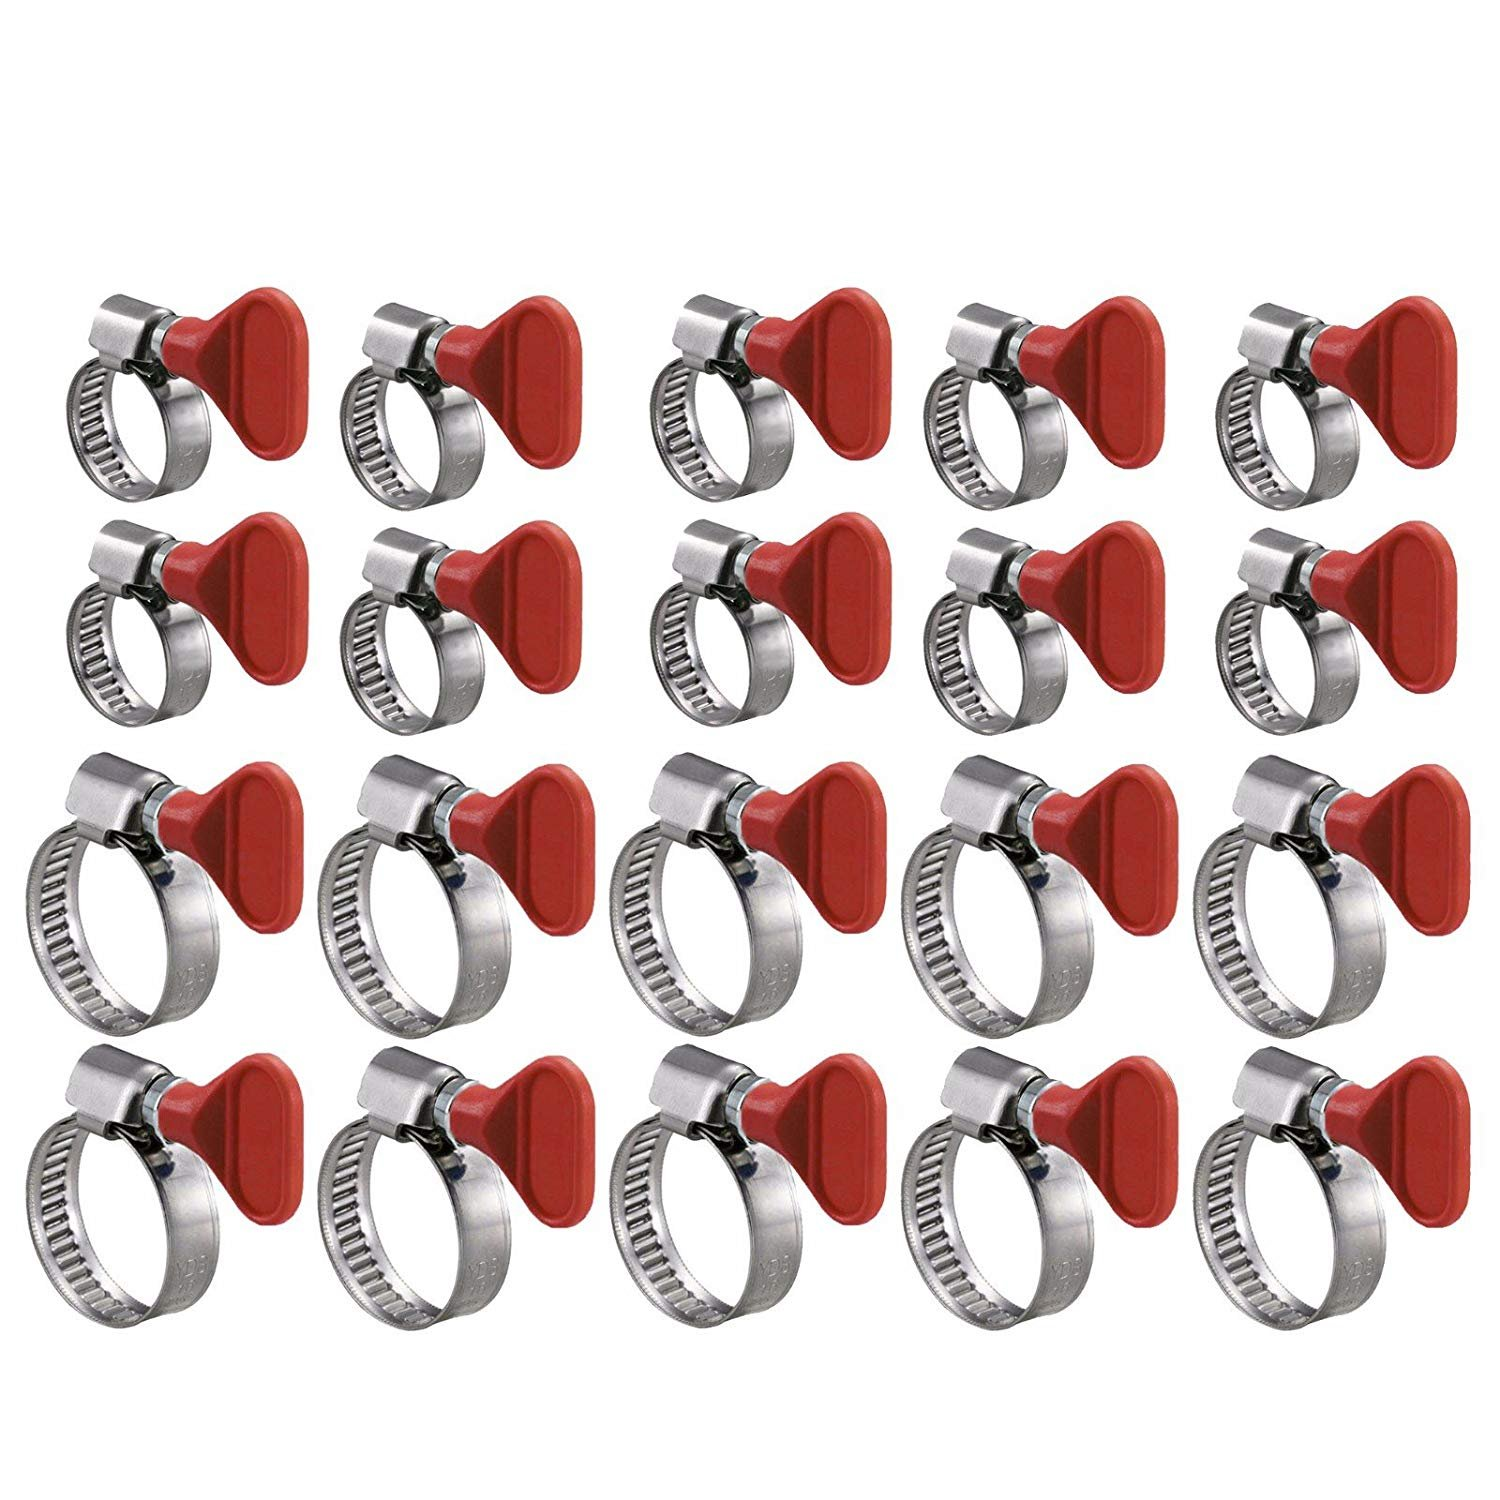 "Wideskall® 20 Pieces Key Type Twist Adjustable Stainless Steel Hose Clamp Set Kit (1"" + 1-1/2"")"